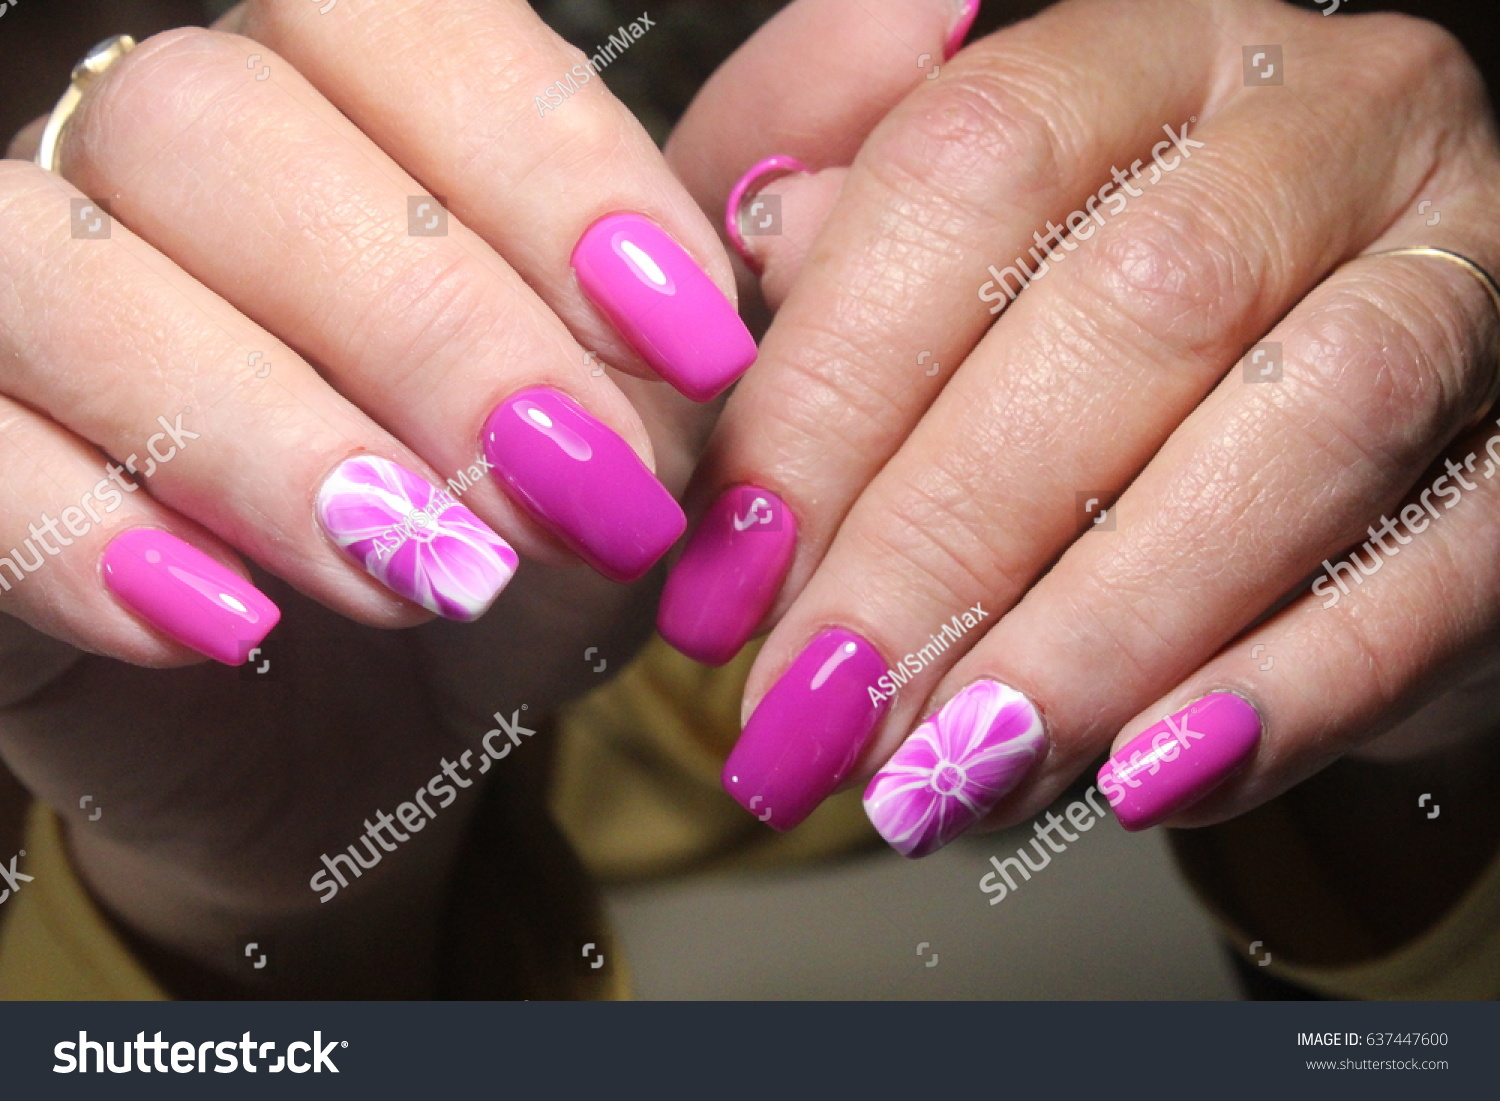 Manicure Nail Design Flower Stock Photo (Royalty Free) 637447600 ...